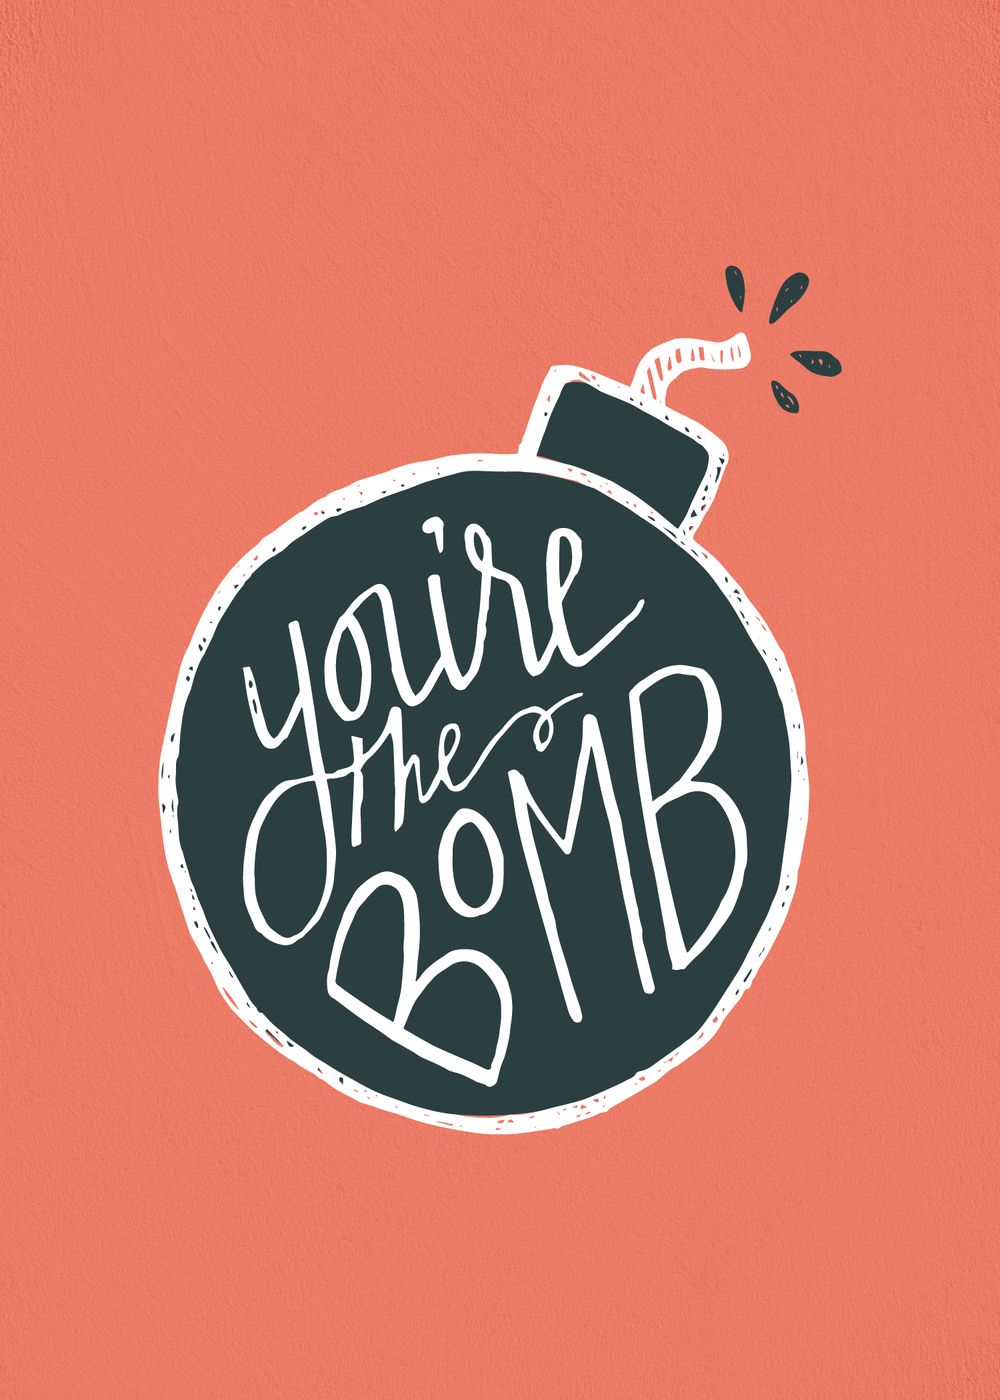 youre the bomb art print-01.jpg